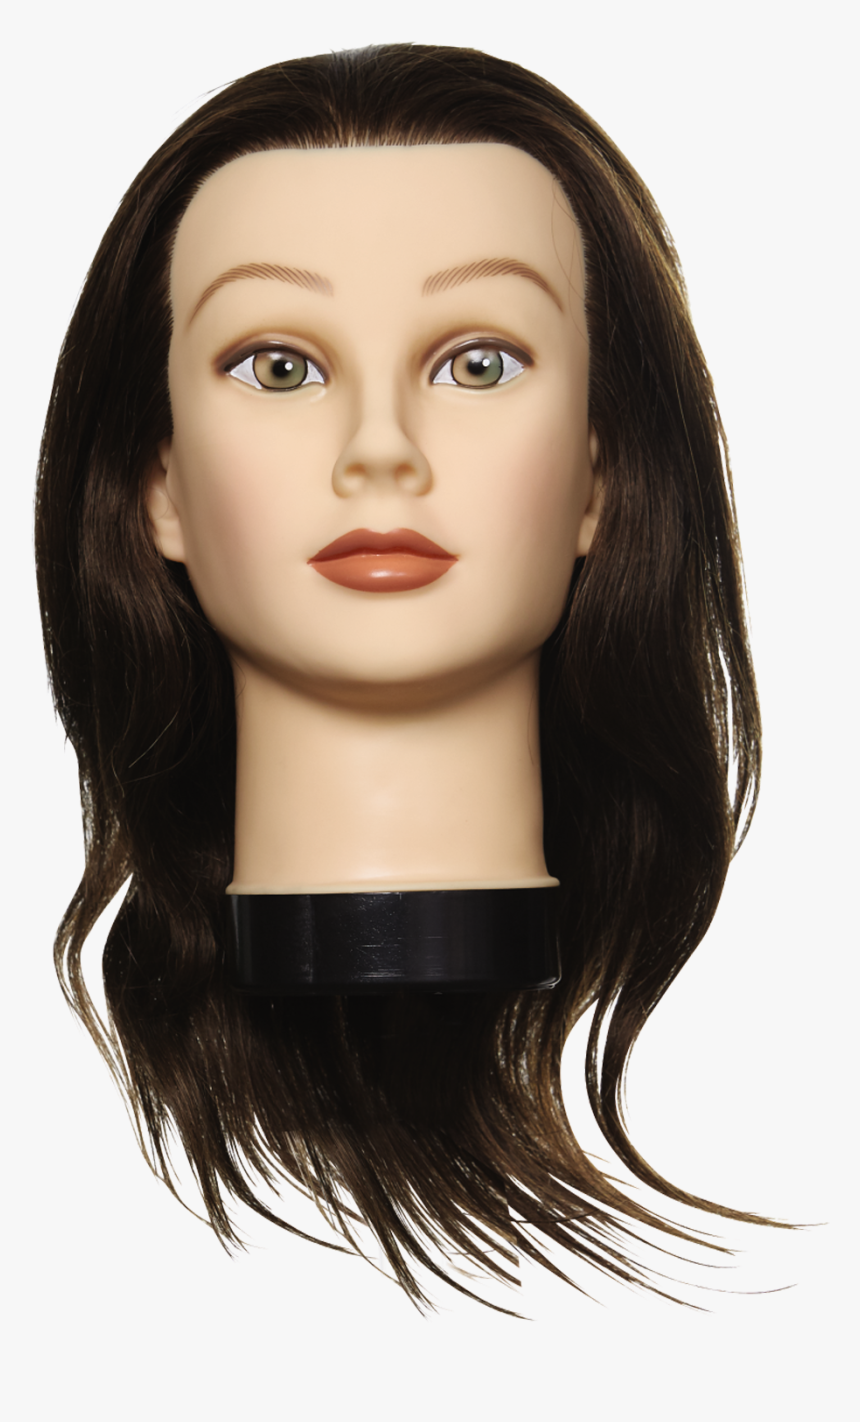 By Salon Care - Mannequin Head, HD Png Download, Free Download